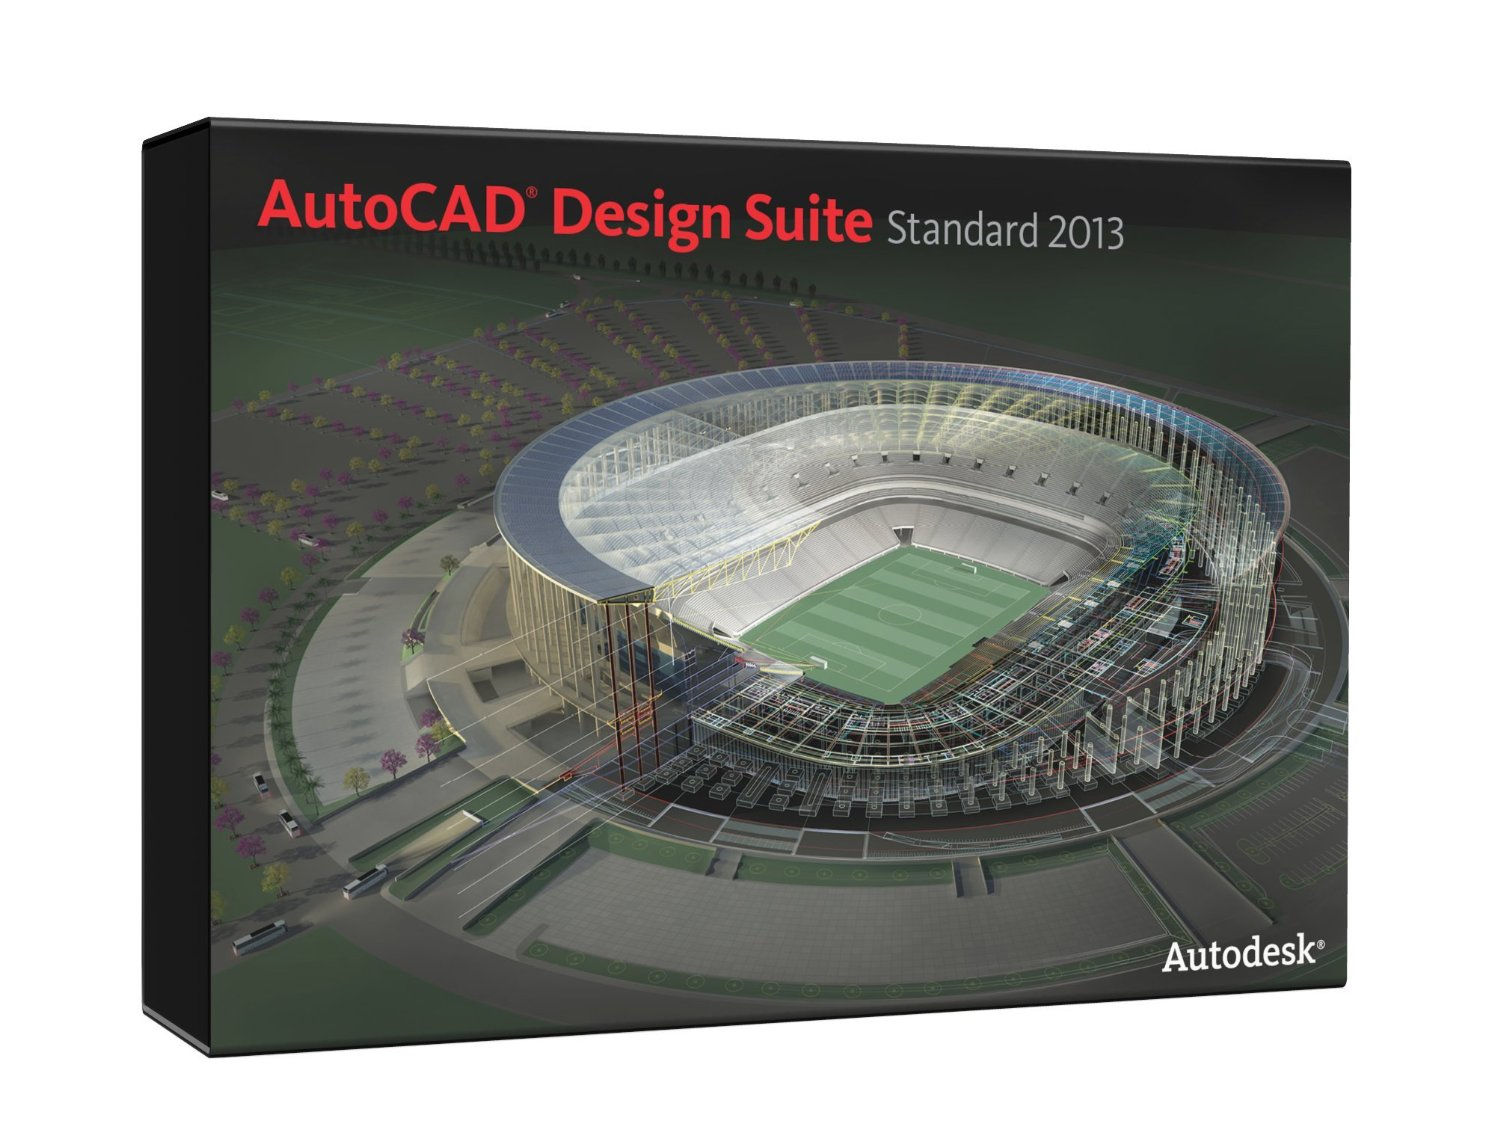 Autodesk AutoCAD Design Suite Ultimate 2013